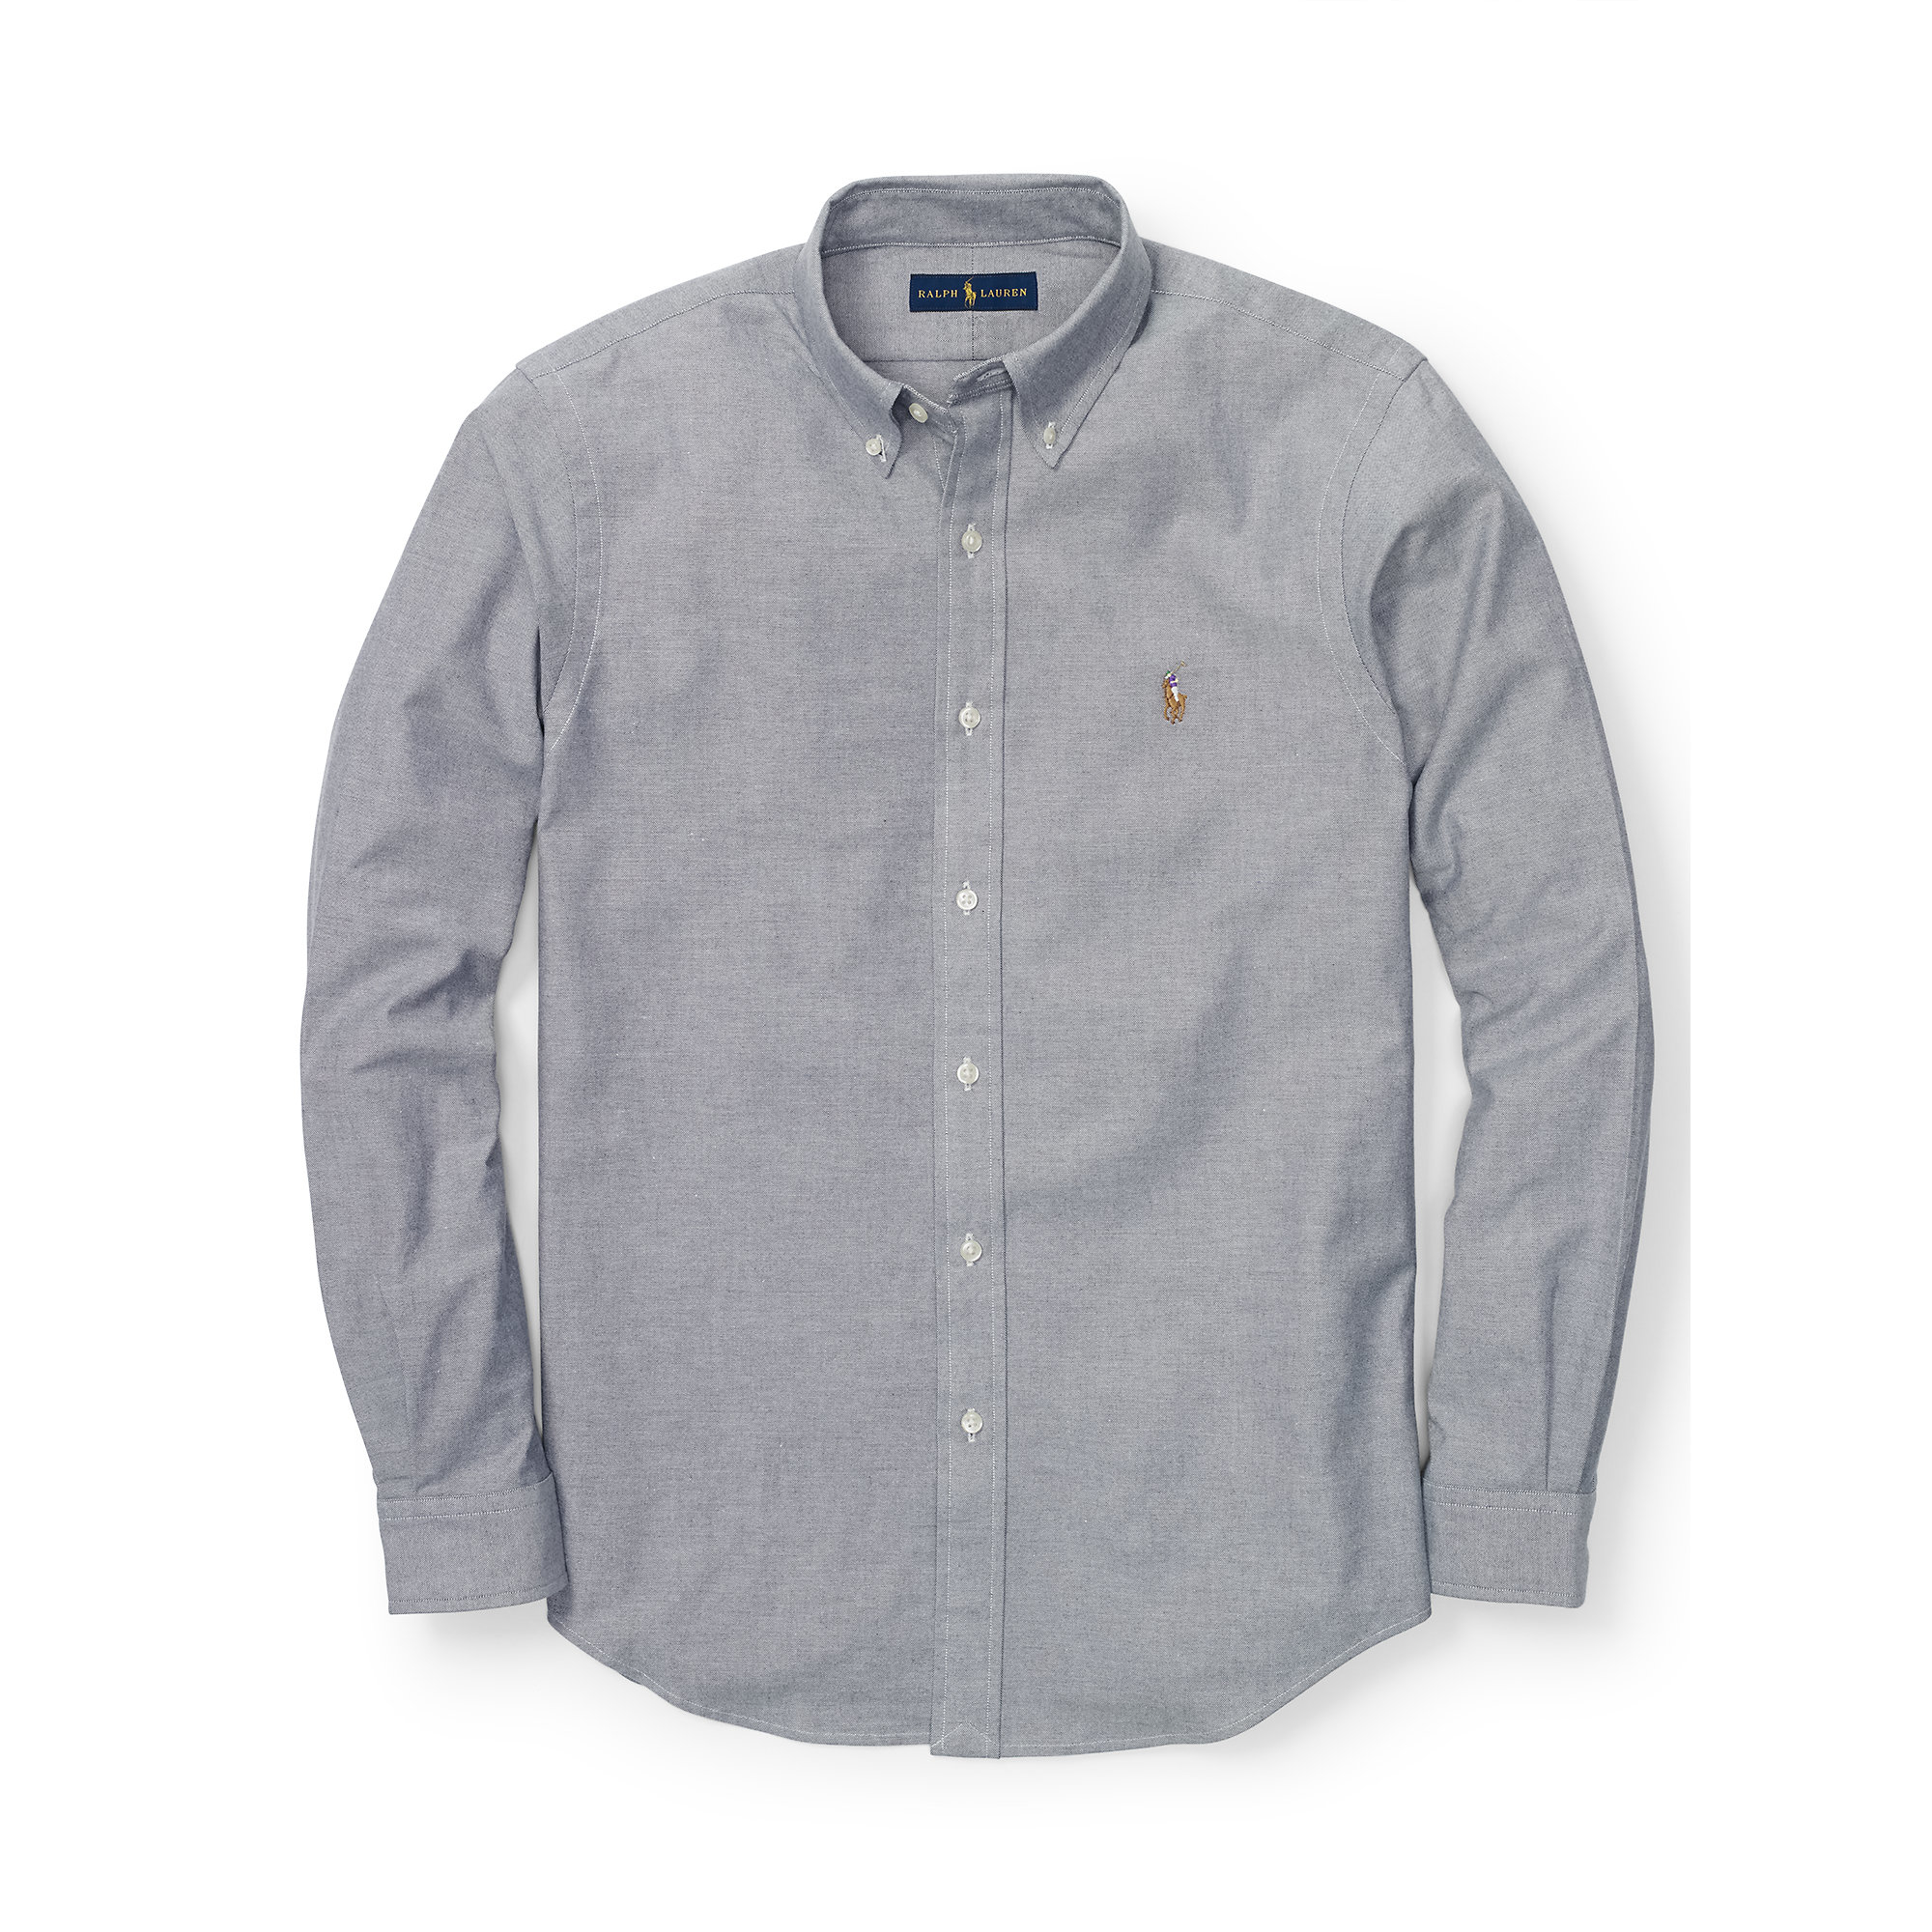 d79606c5 Polo Ralph Lauren Slim-fit Stretch Oxford Shirt in Gray for Men - Lyst